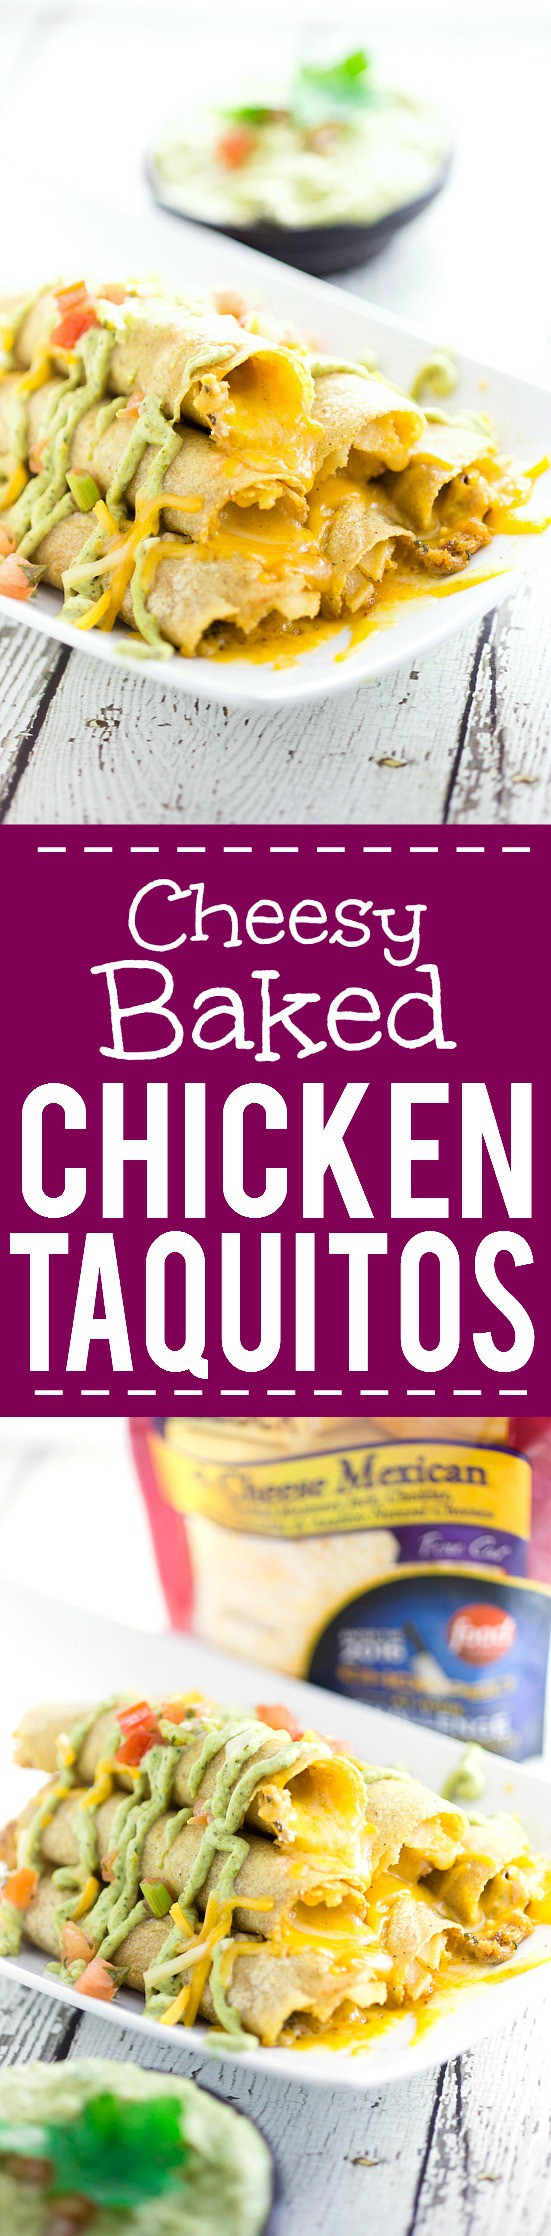 Cheesy Baked Chicken Taquitos recipe - Easy and cheesy Baked Chicken Taquitos will become a yummy, Mexican-inspired family dinner favorite in no time! Serve with the Roasted Creamy Poblano Dip for an extra zesty and a little spicy kick. These look amazing! So cheesy!